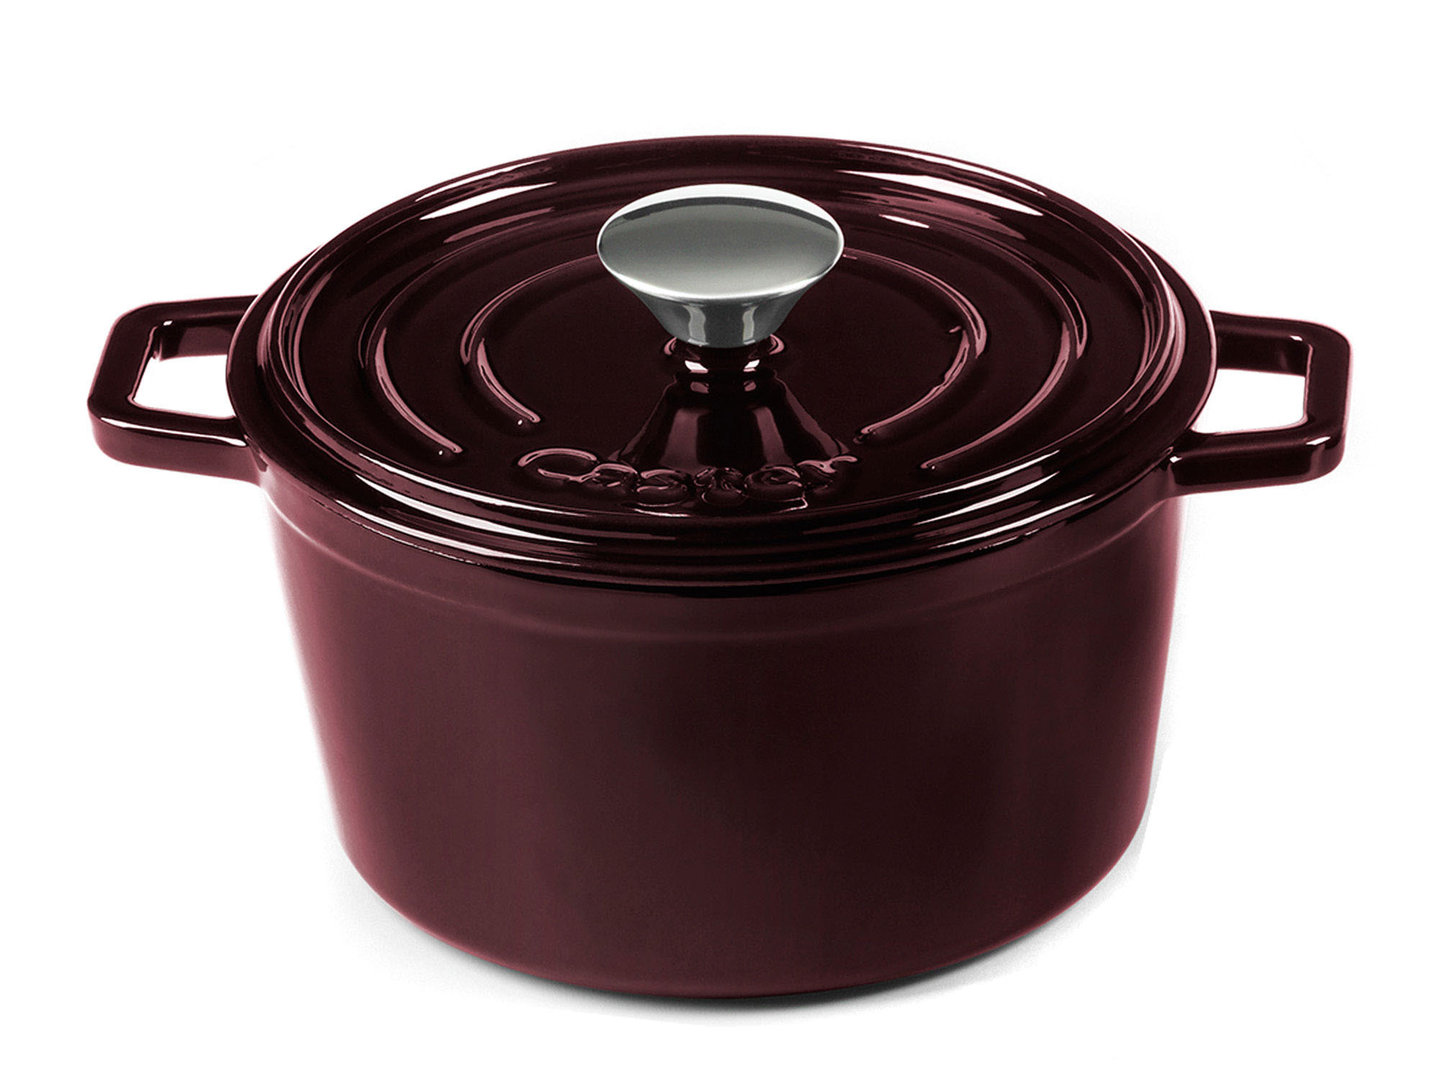 CASTEY Gusseisen Topf COCOTTE 20 cm PURPUR Emaille